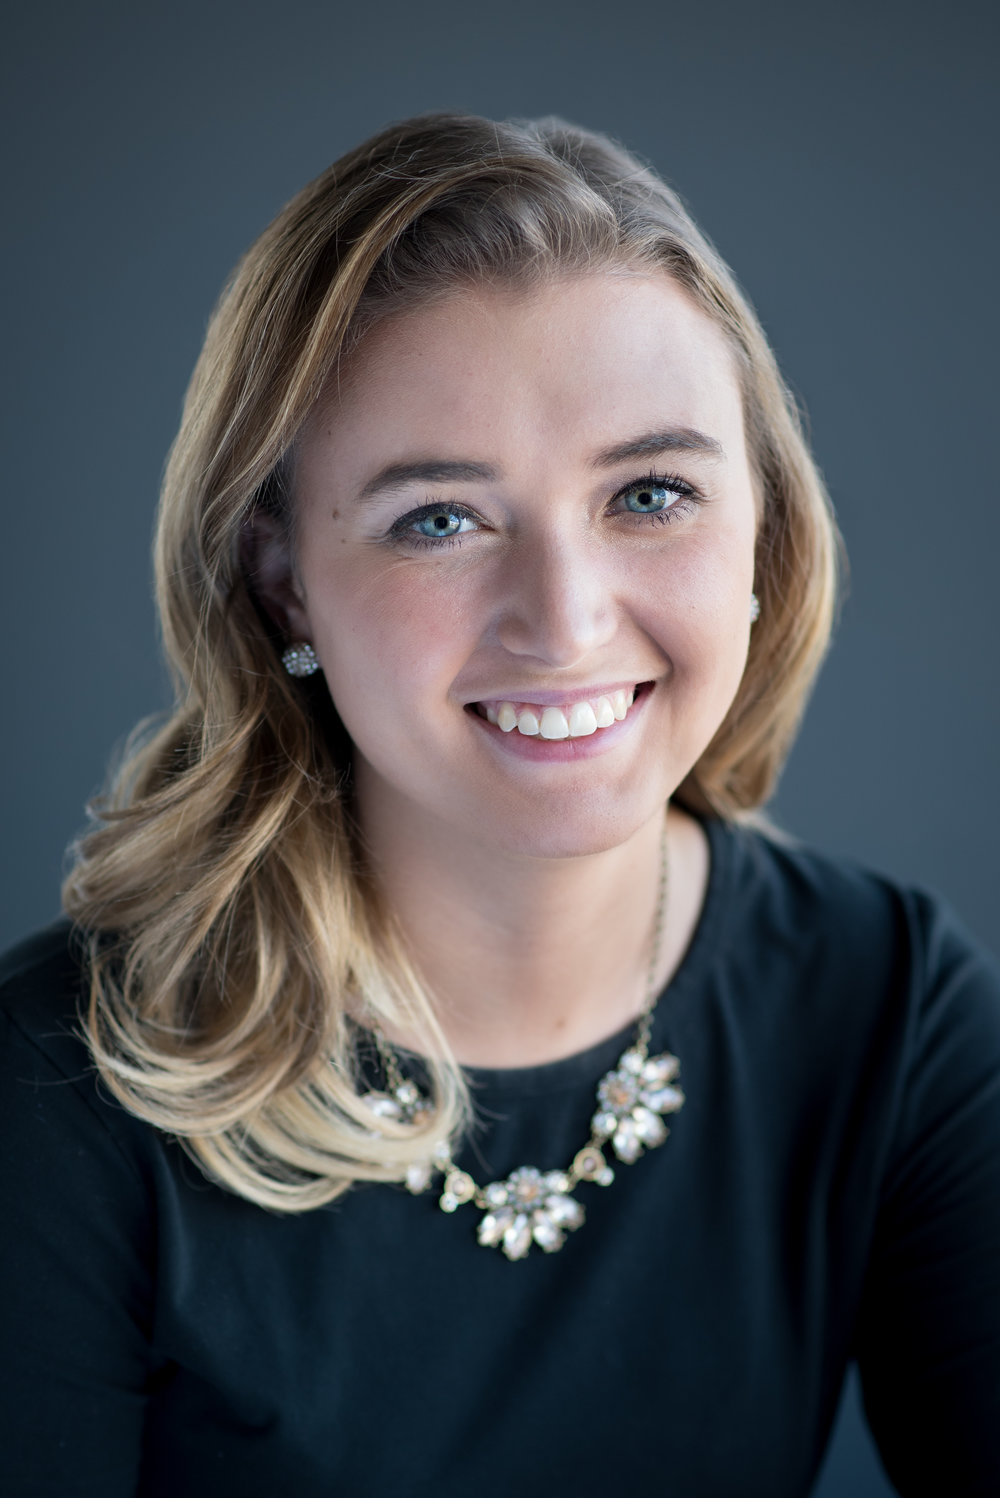 Danielle Dettloff yearbook headshot-.jpg